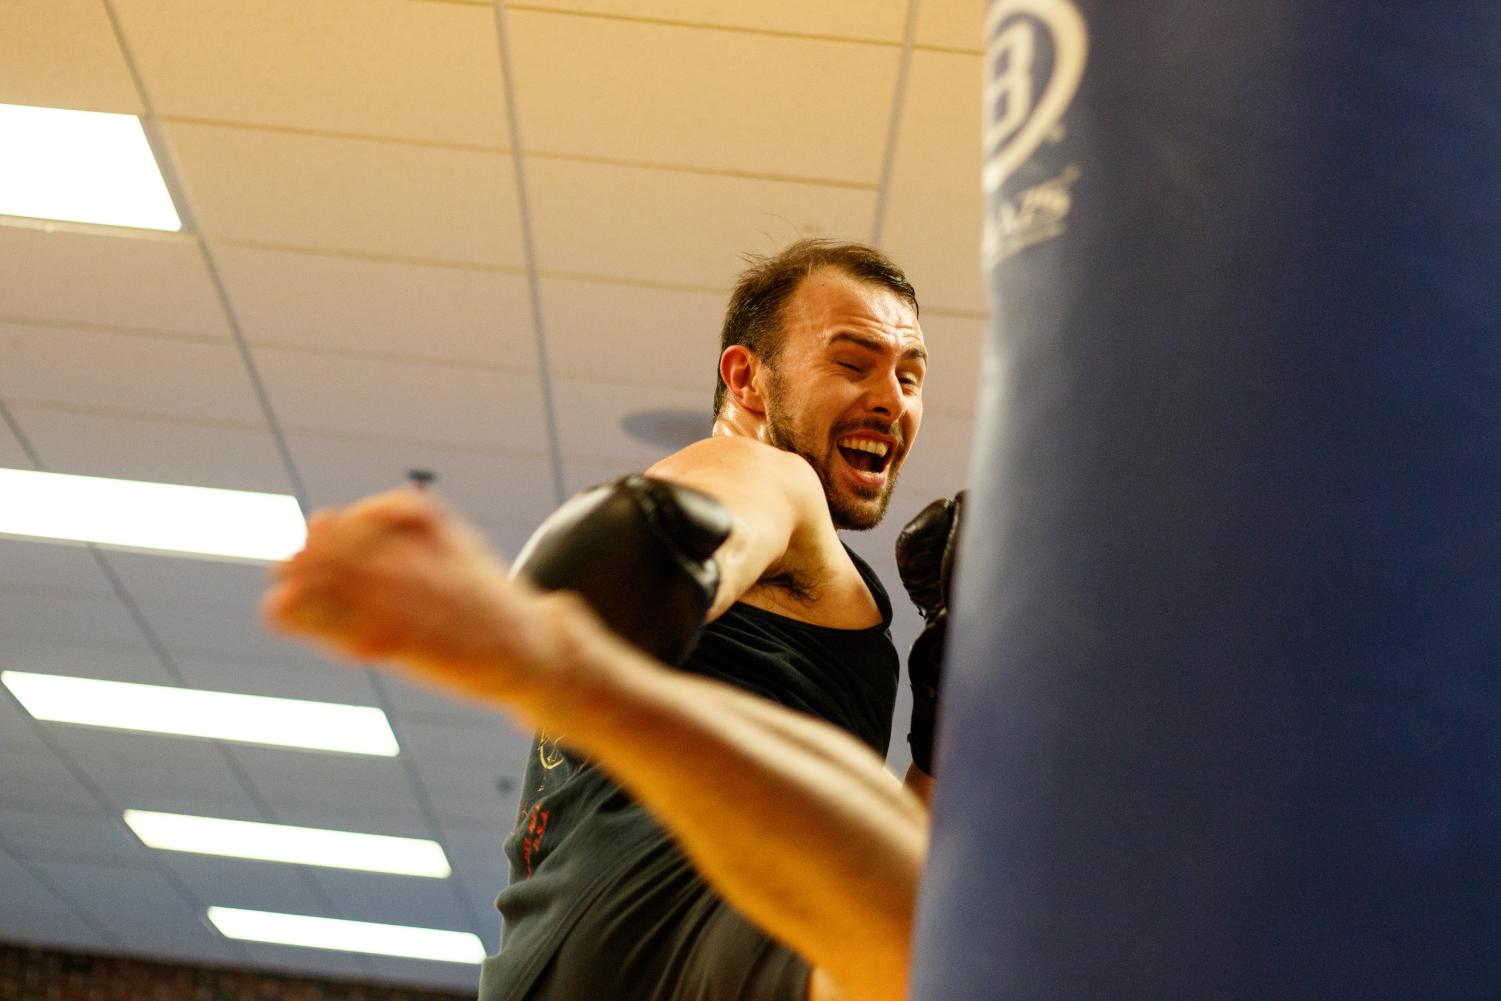 Adam Taggart, second year doctoral student in kinesiology, practices his kickboxing skills. This hobby turned into a field of research for Taggart, as he is studying the effects of martial arts on cognitive functions.